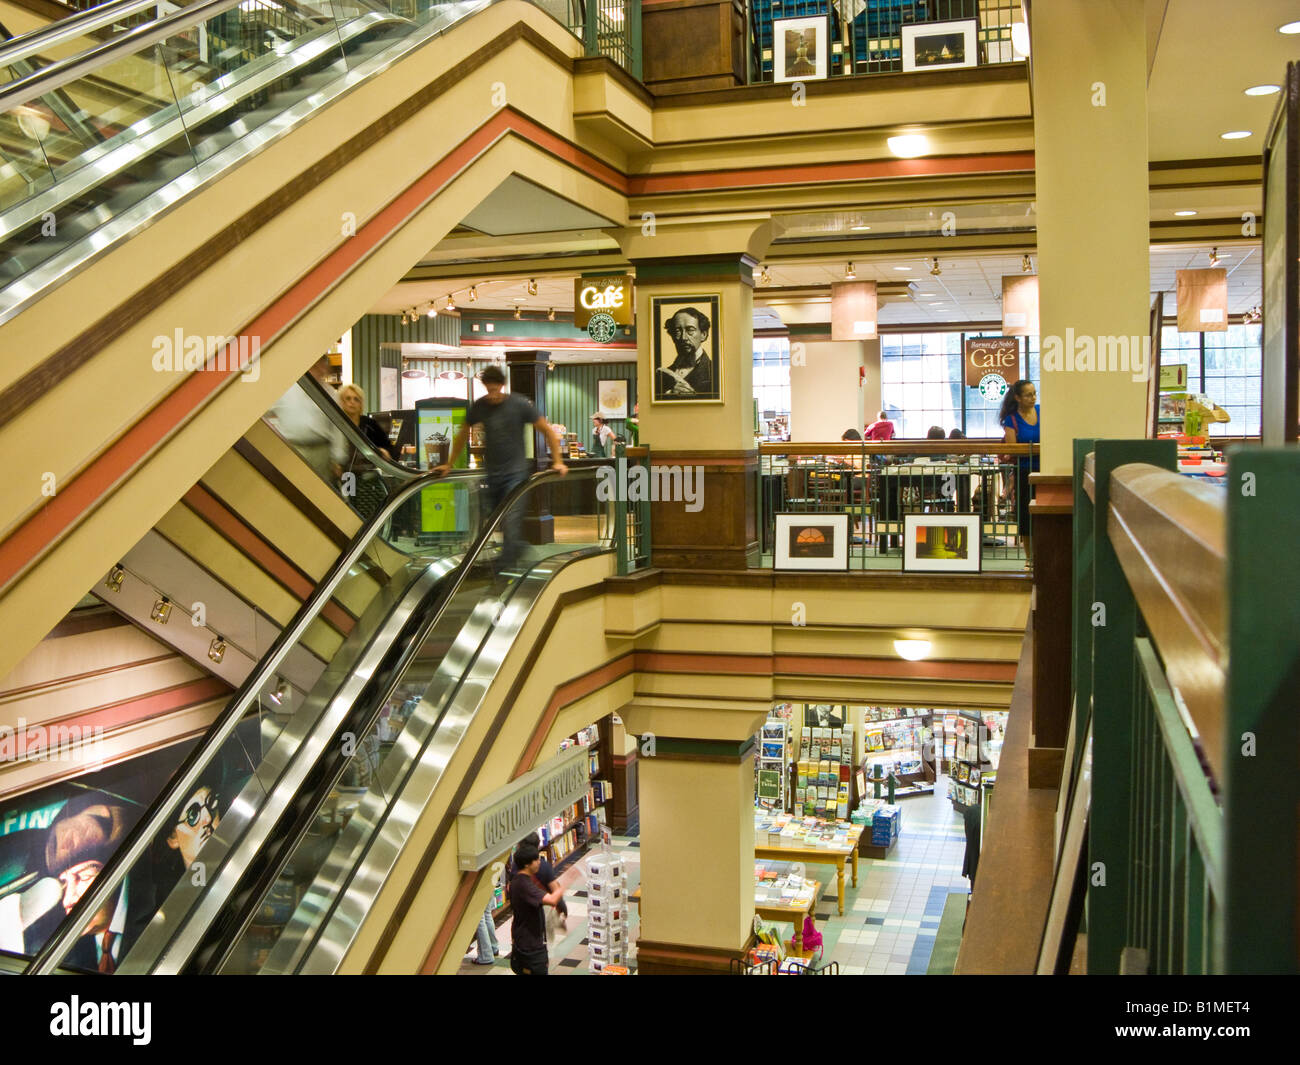 Barnes And Noble Cafe Stock Photos & Barnes And Noble Cafe Stock ...